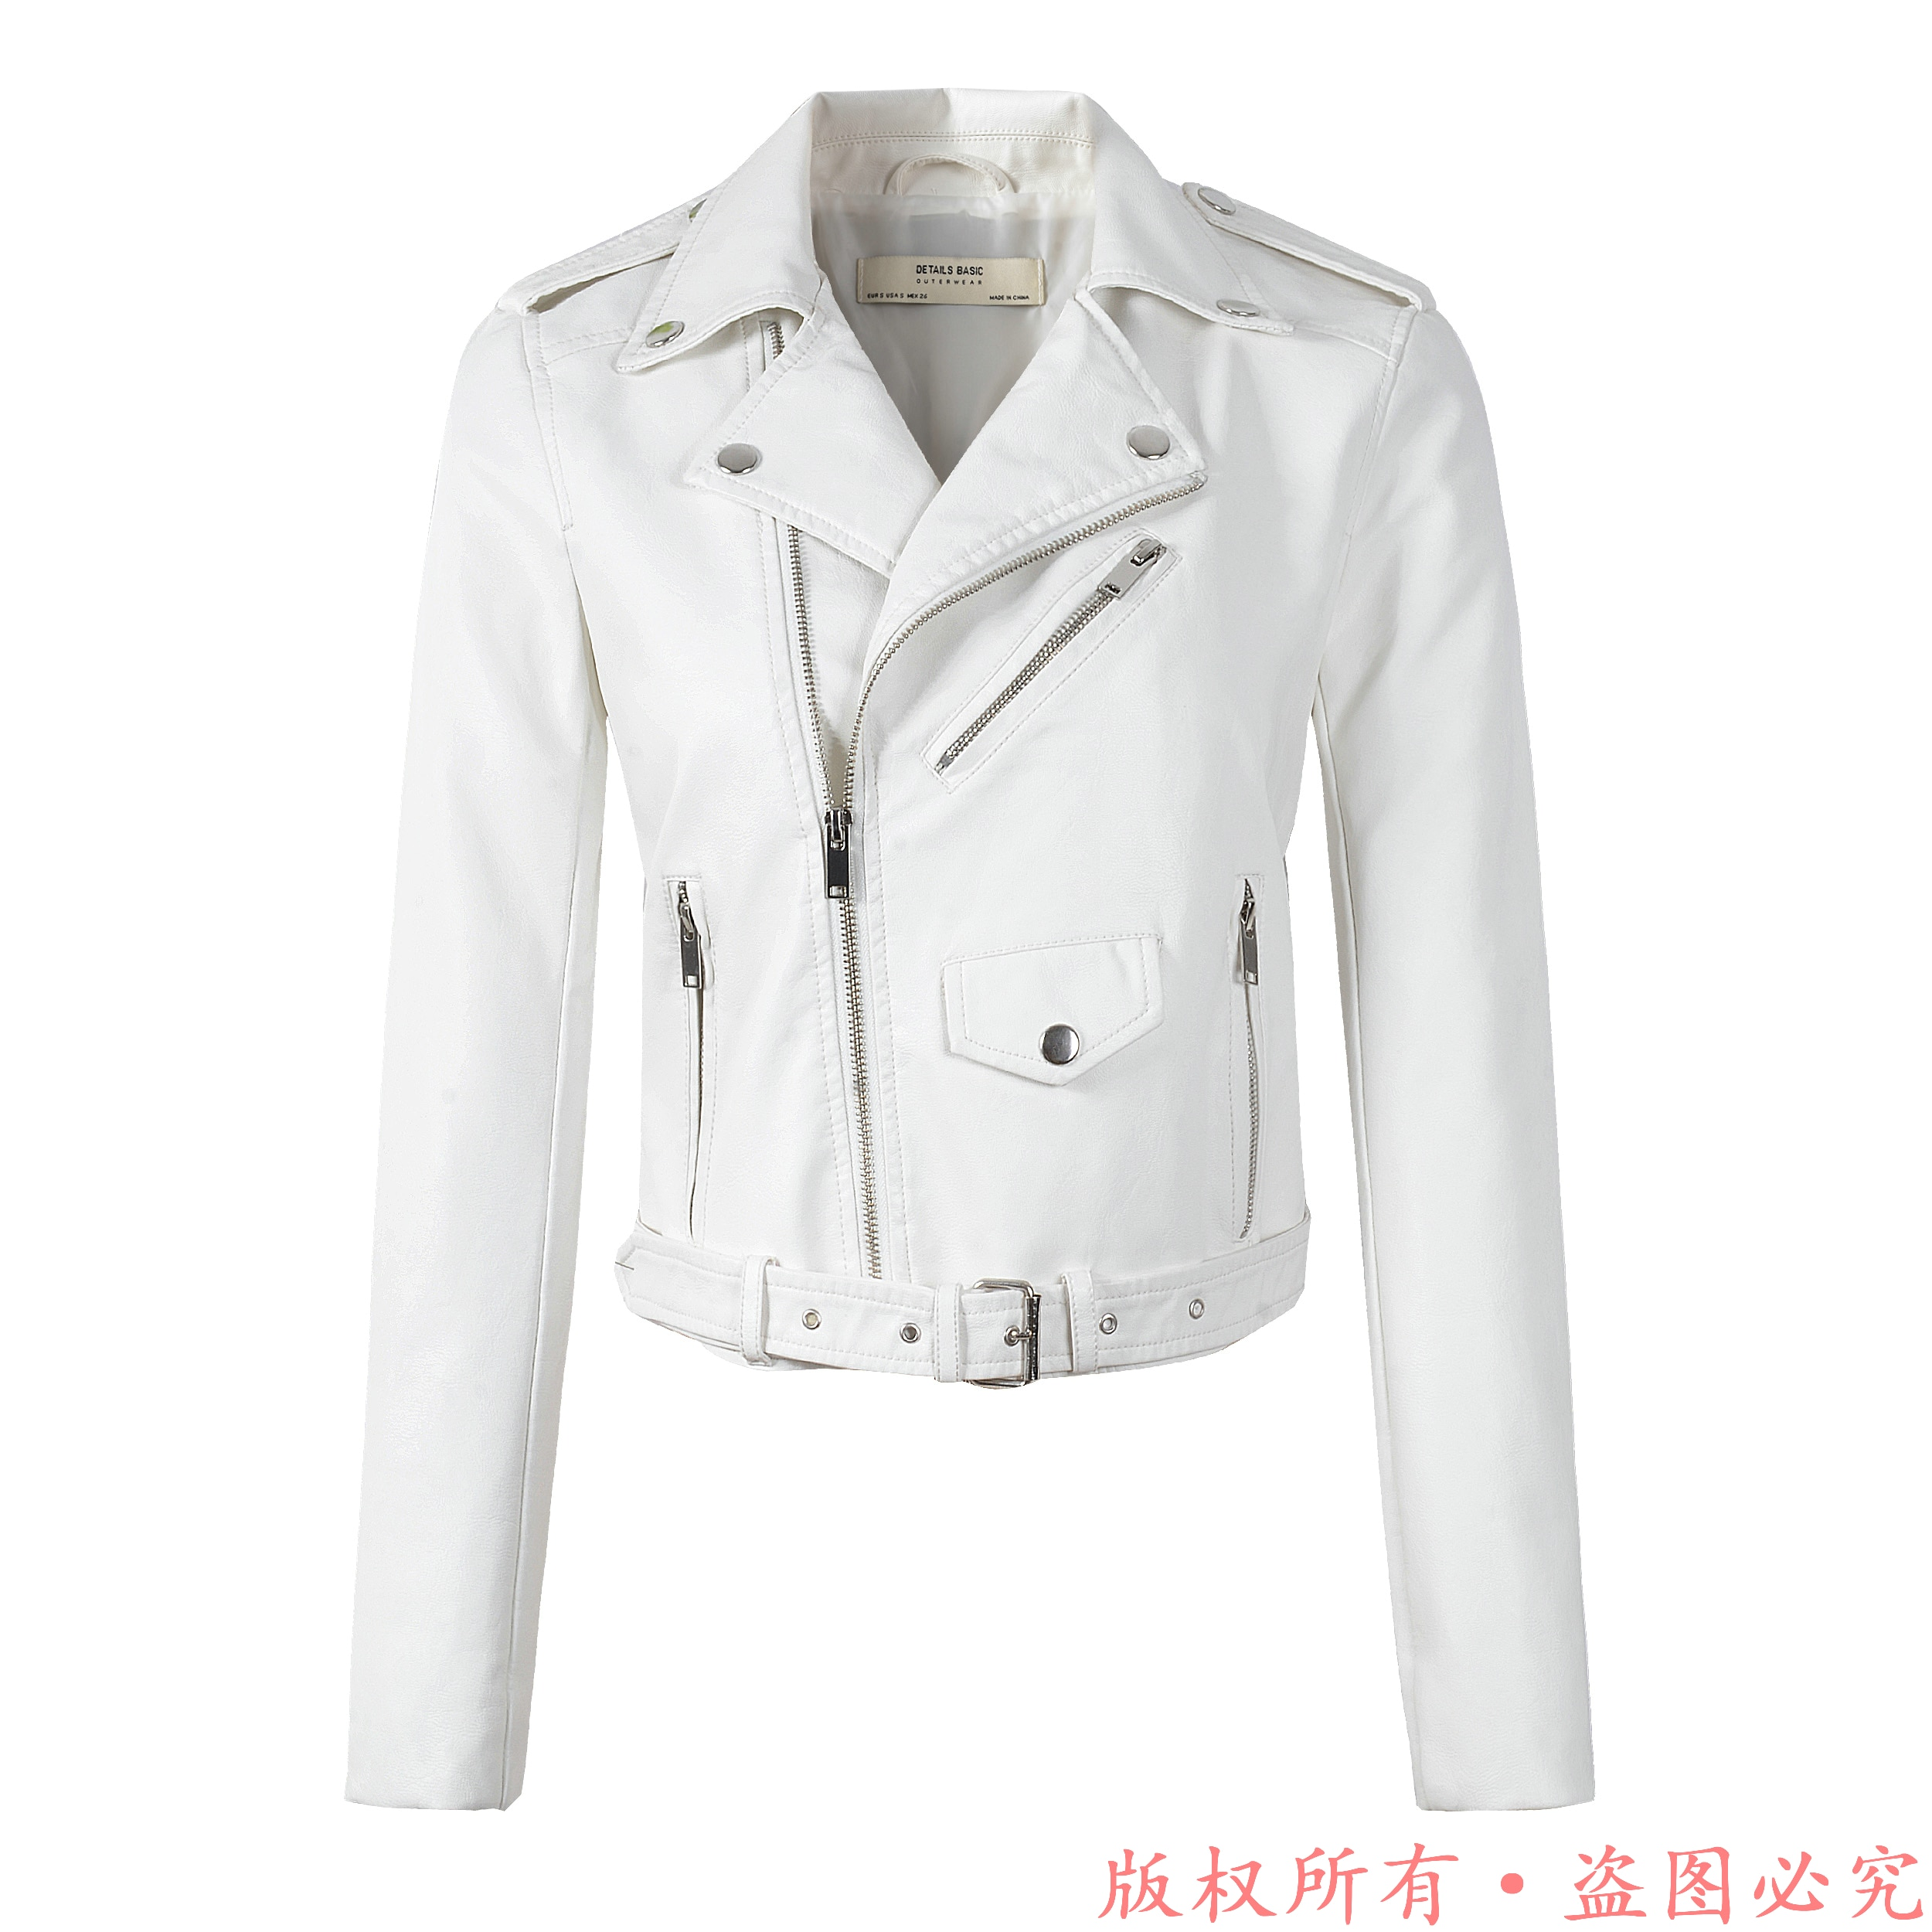 New Arrival 2020 brand Winter Autumn Motorcycle leather jackets White leather jacket women leather coat slim PU jacket Leather